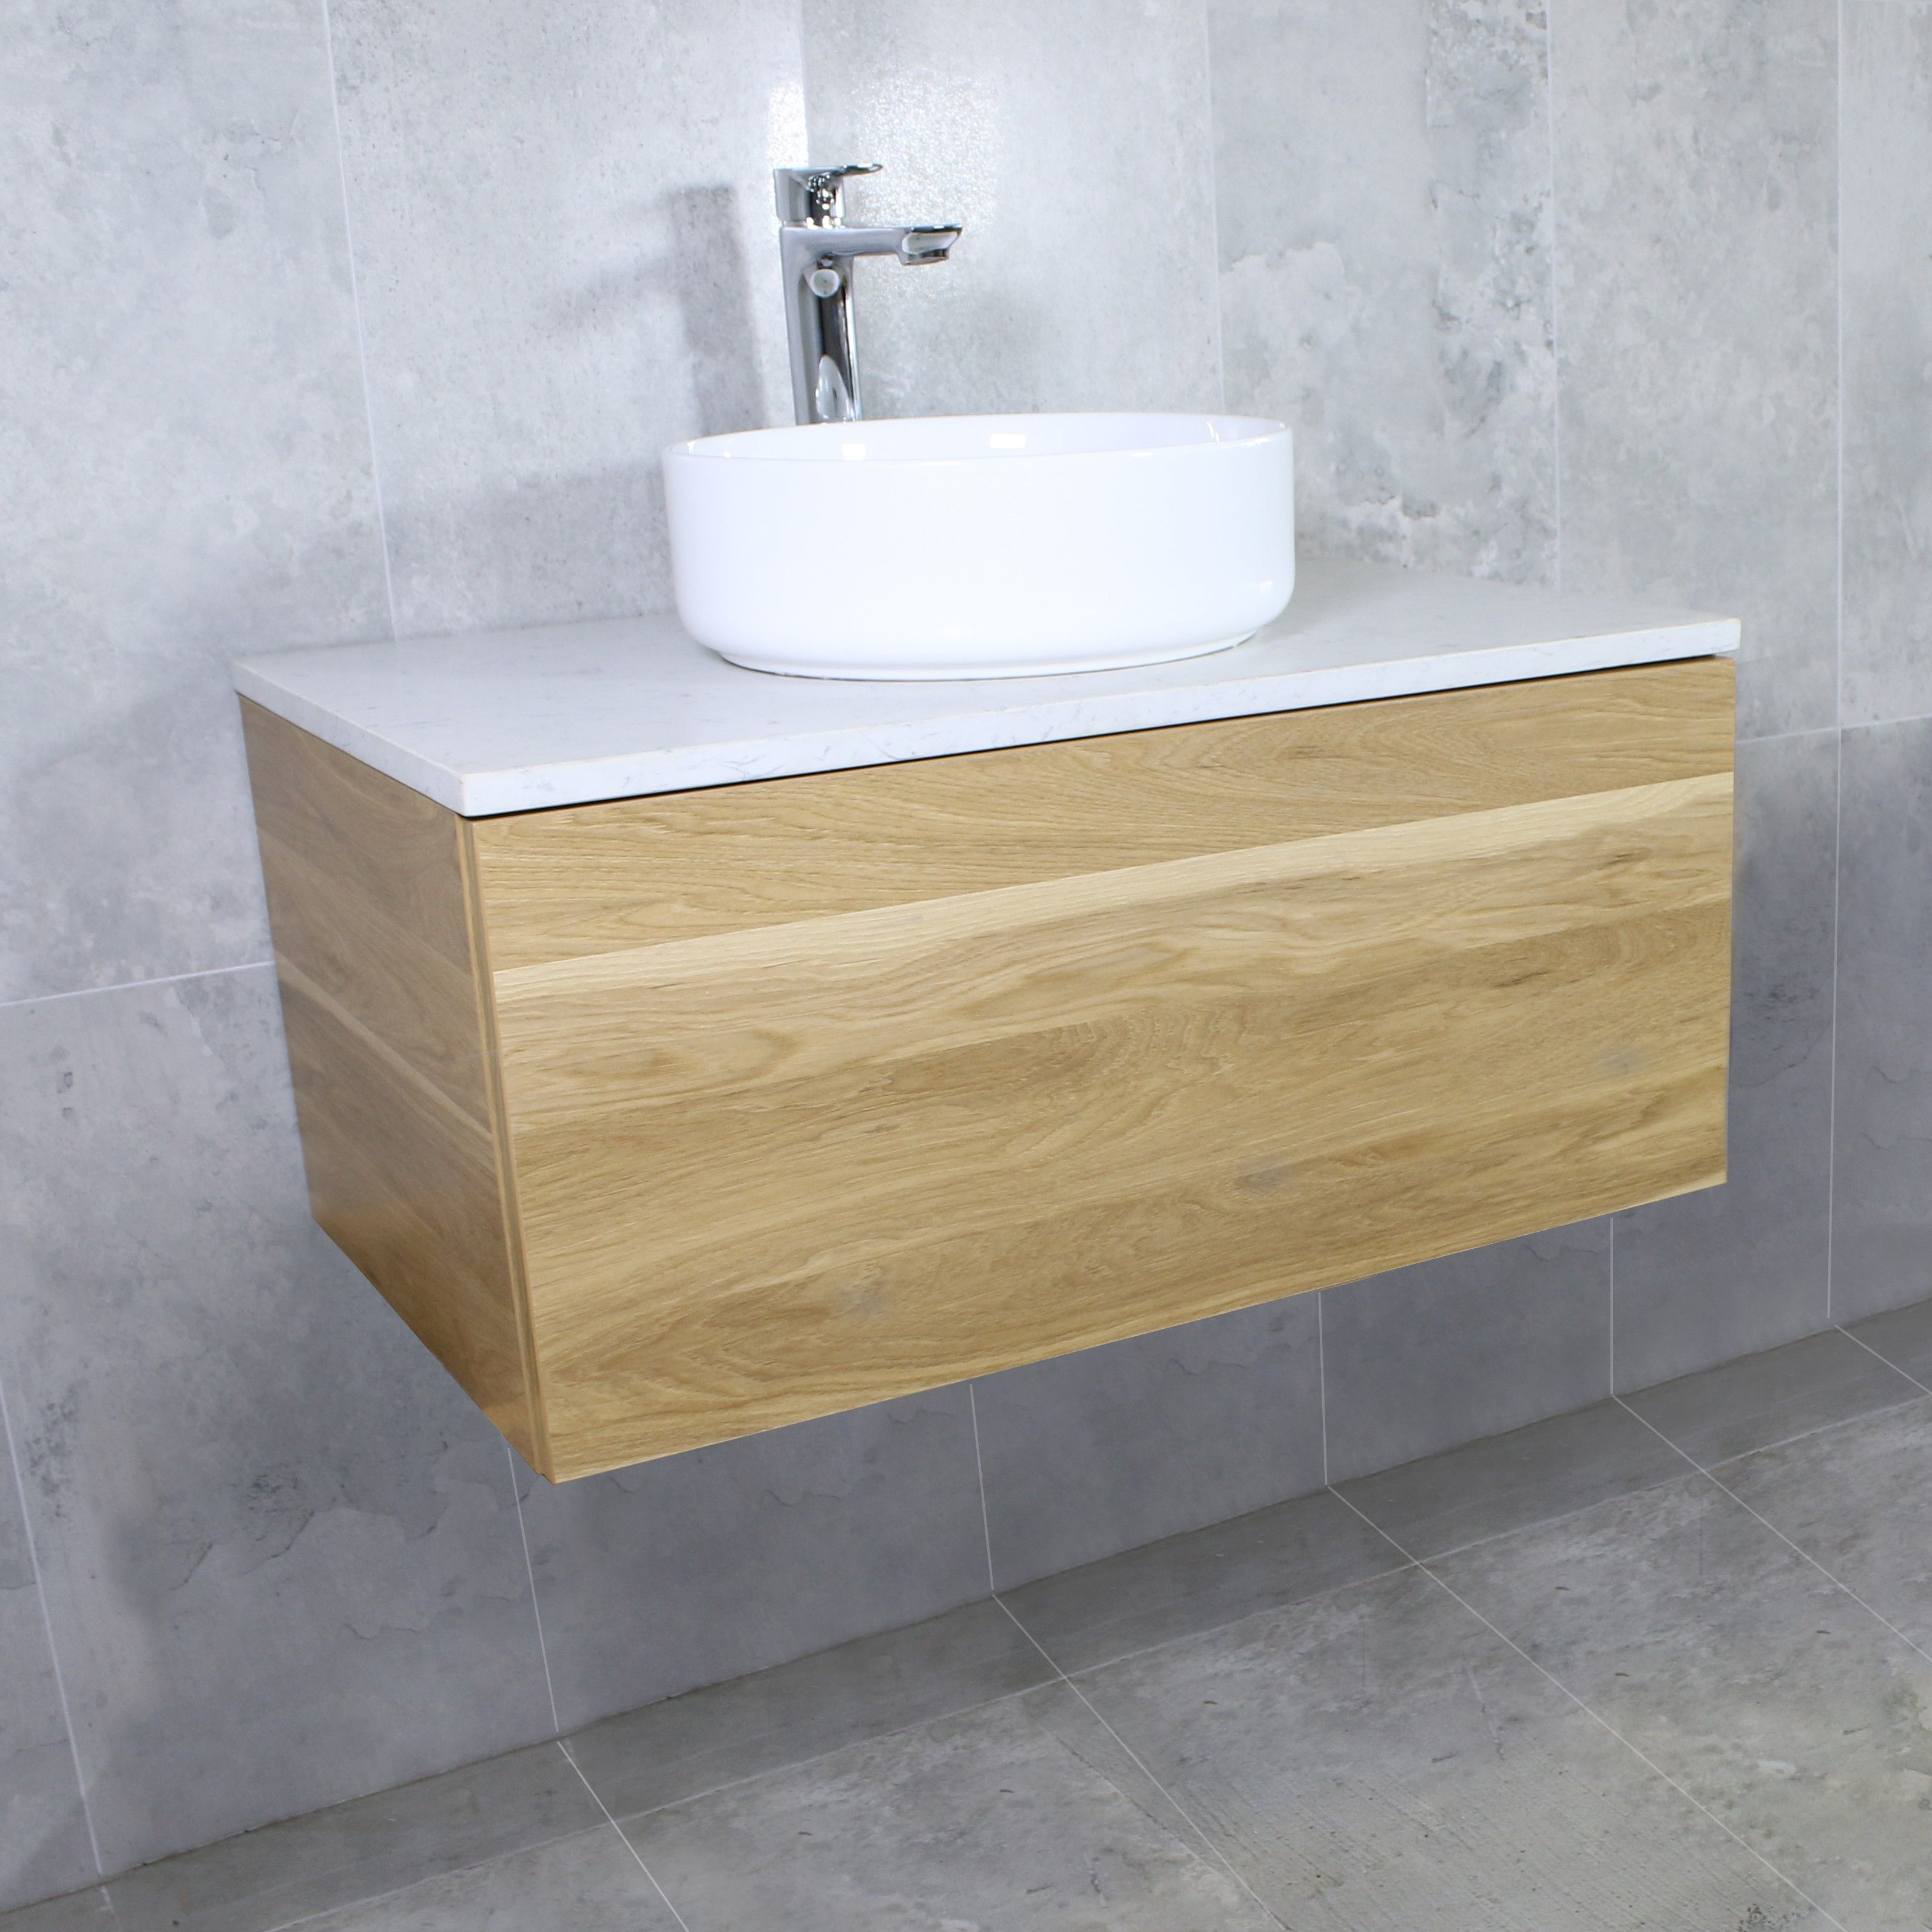 The Awesome Web Eden Timber Wall Mount Vanity Cabinet without Top mm